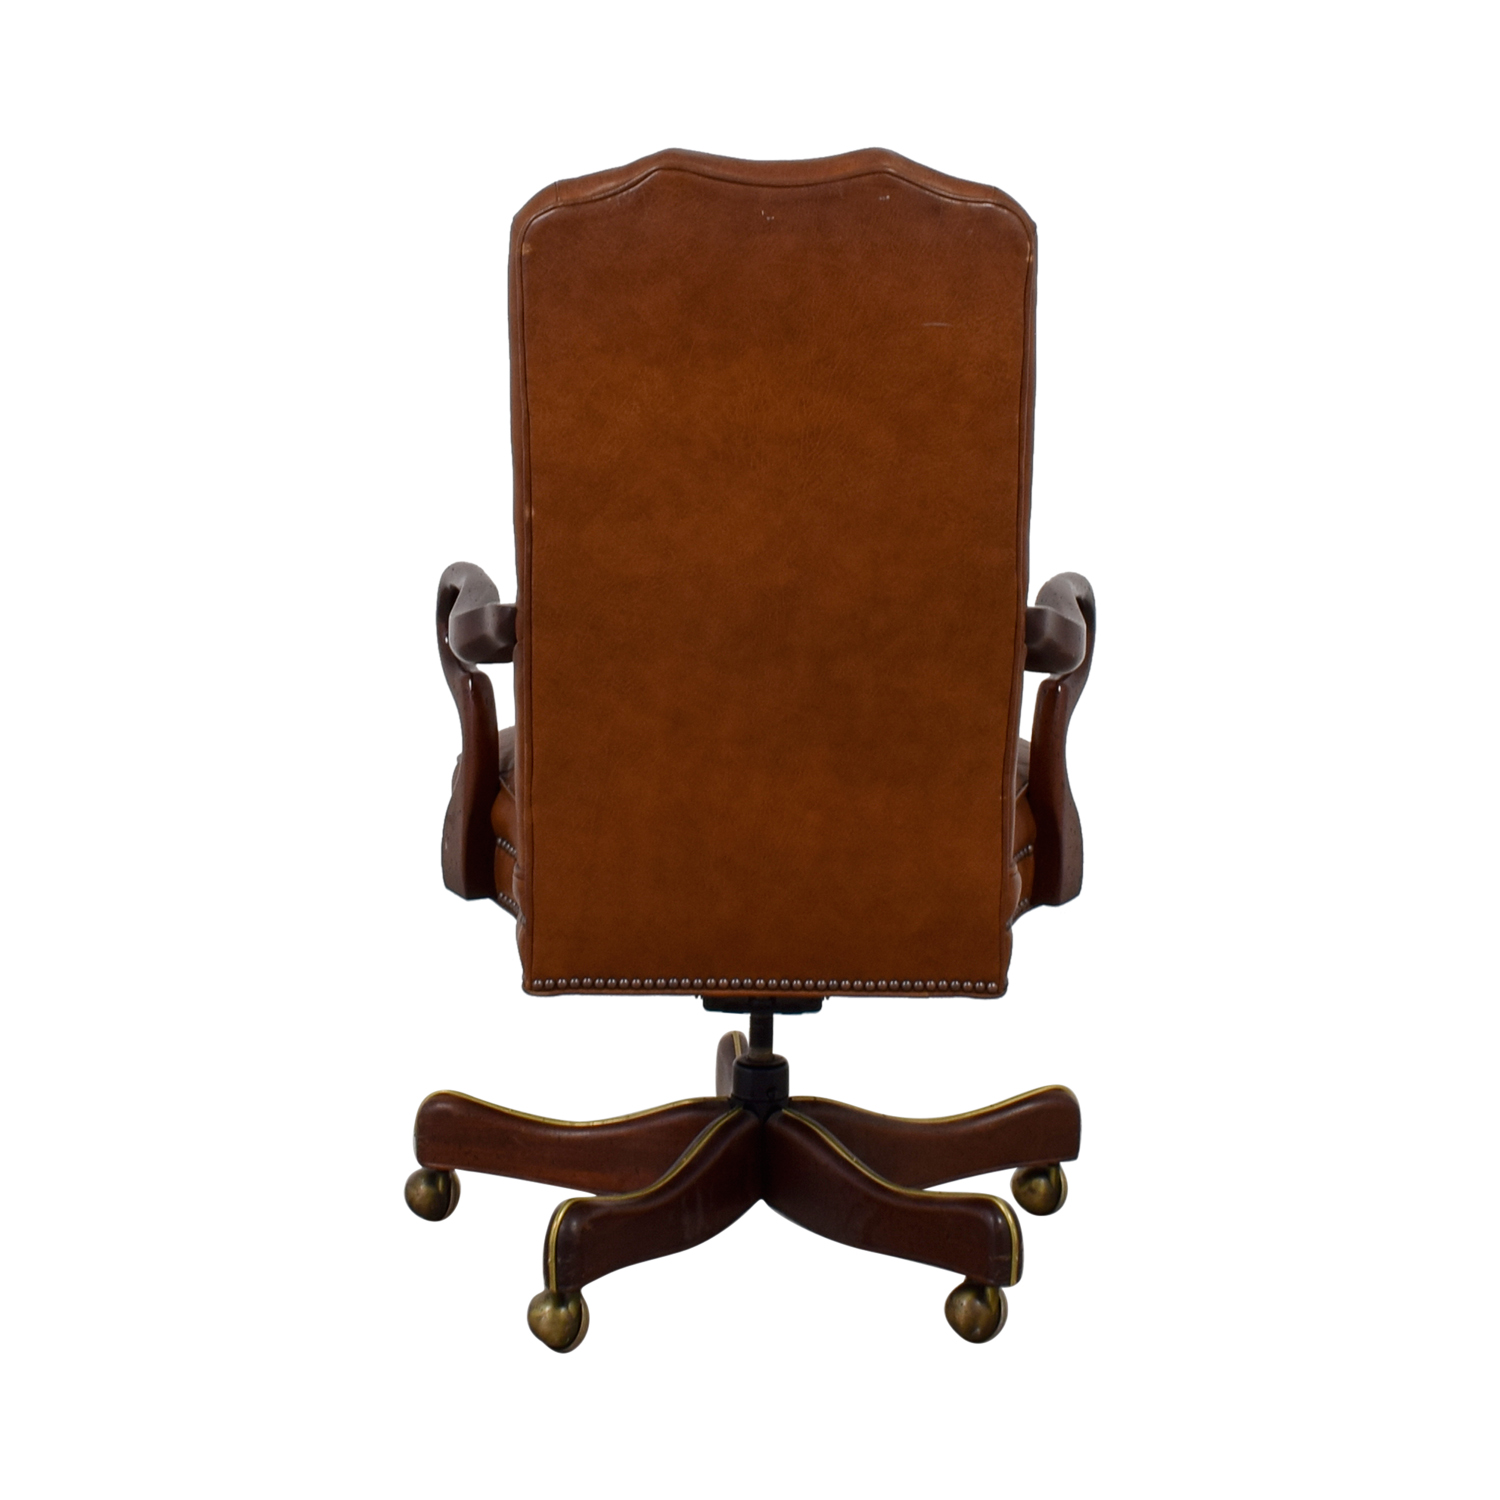 Buy Charles Stewart Company Brown Leather Desk Chair Charles Stewart Company